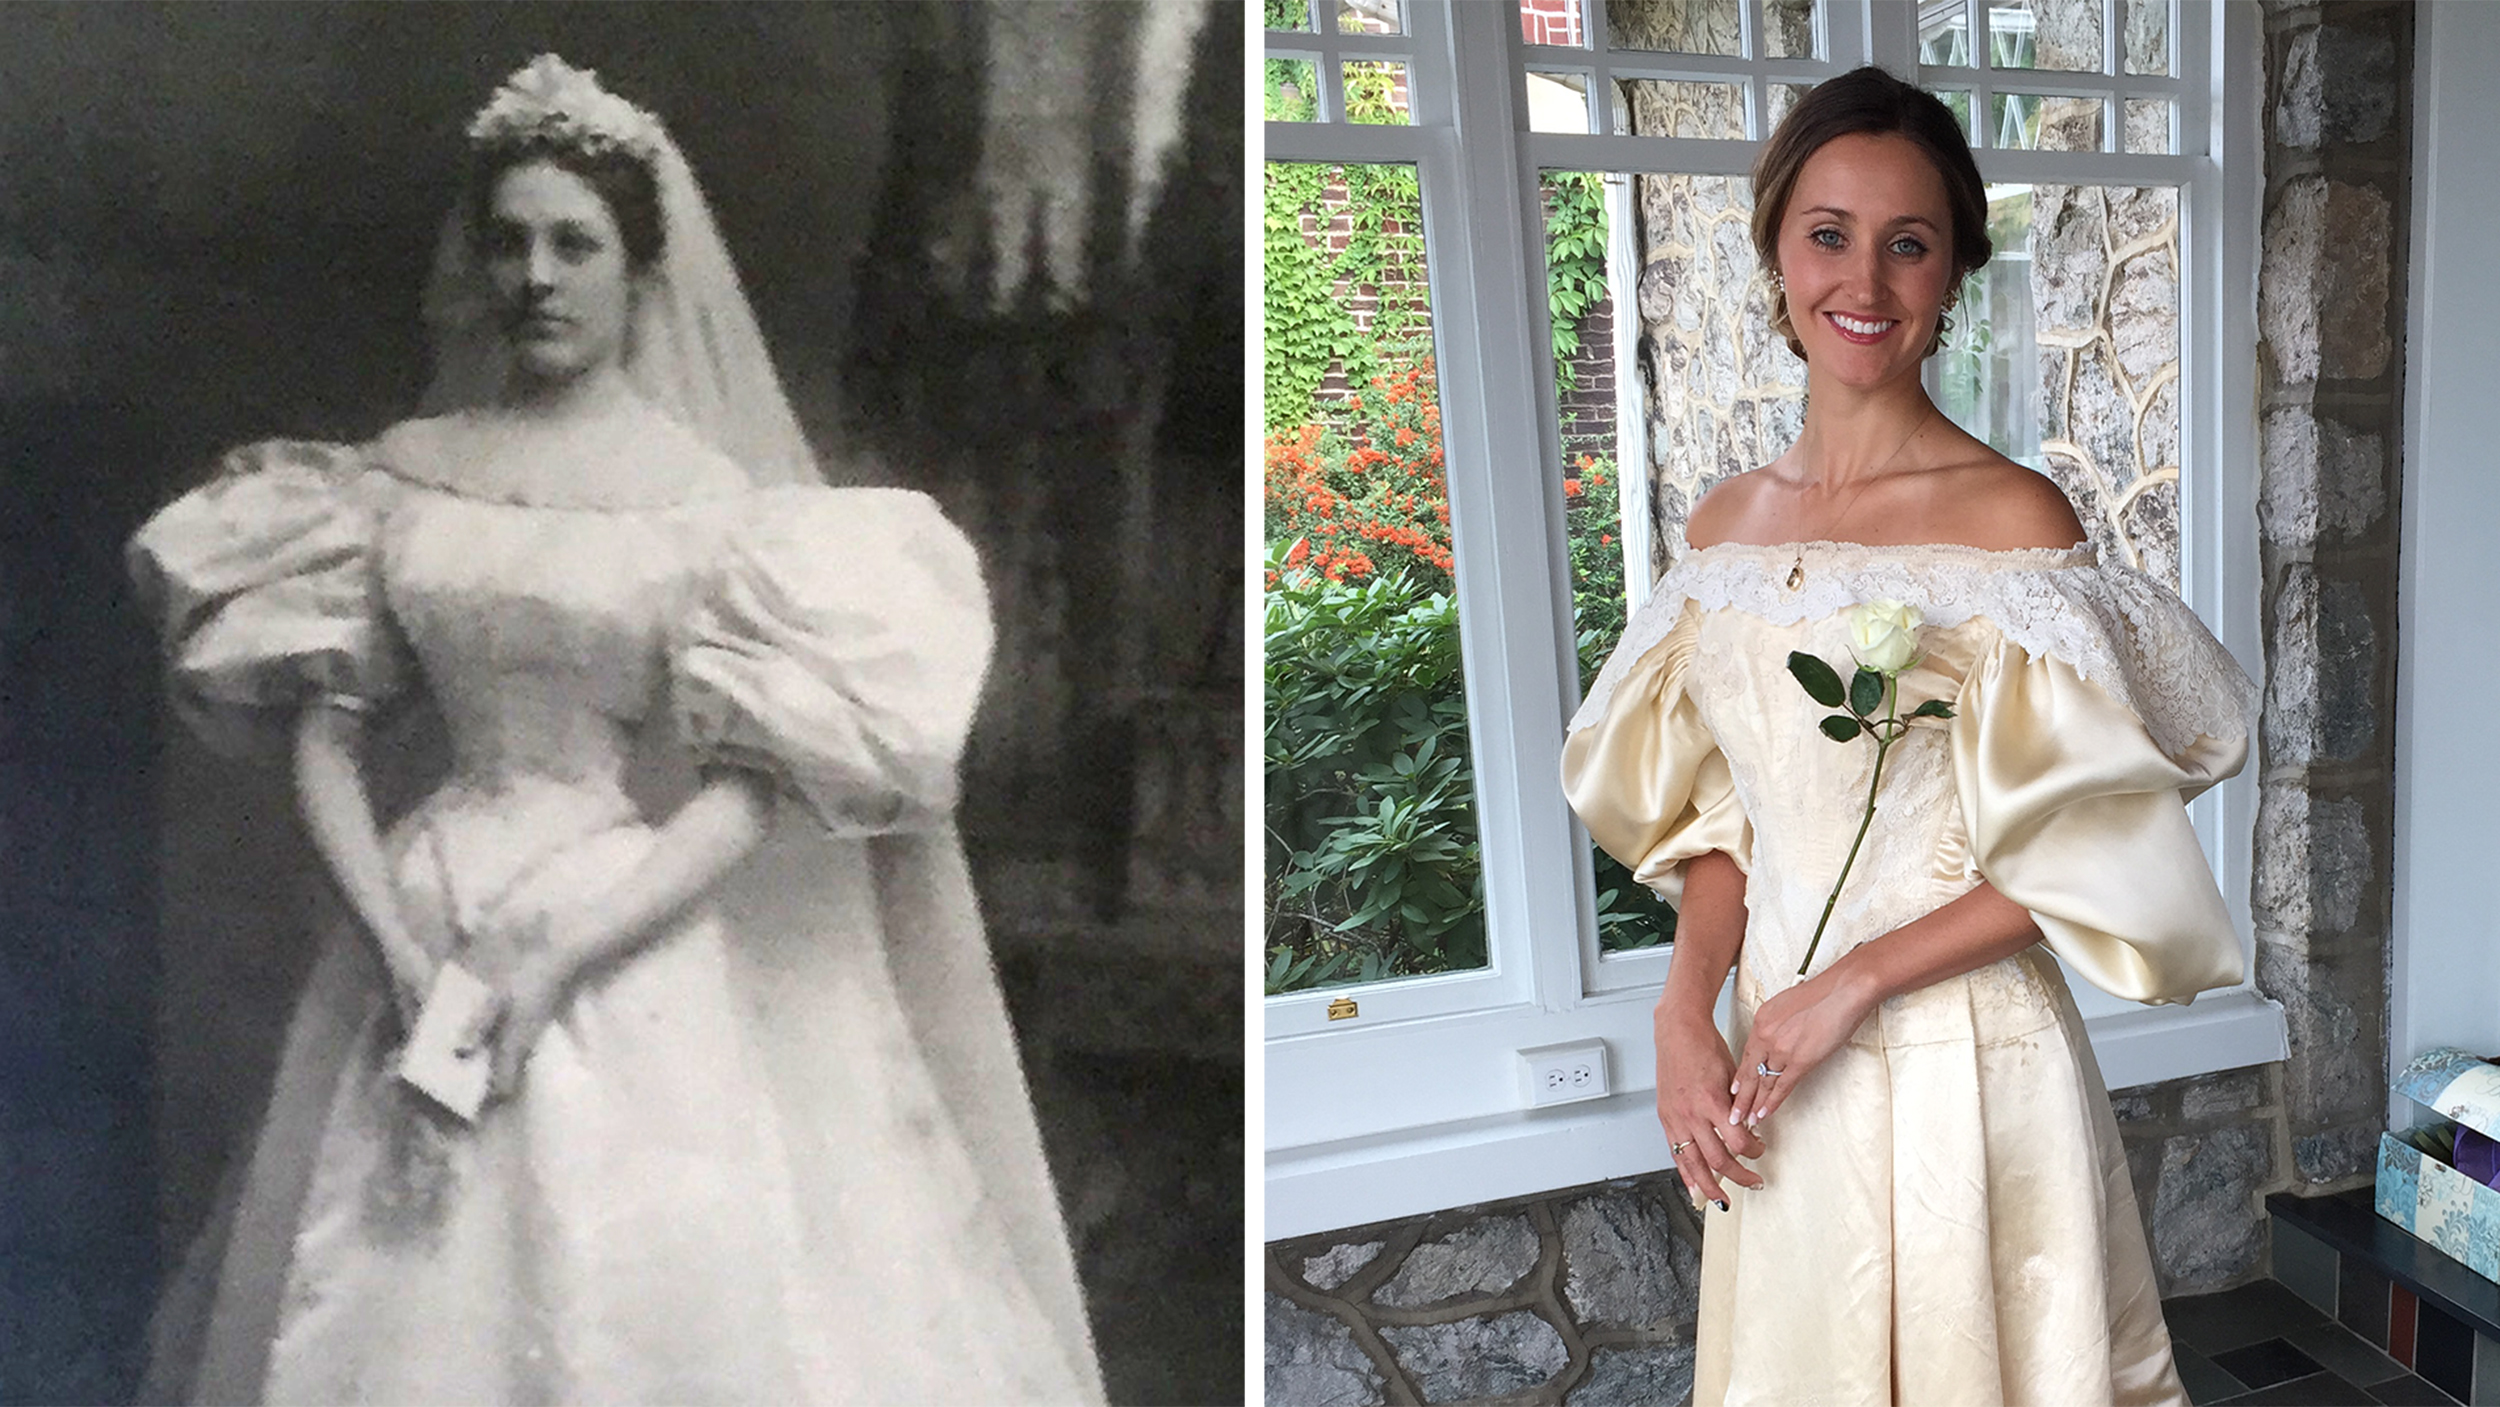 Bride Will Be 11th In Family To Wear 120 Year Old Wedding